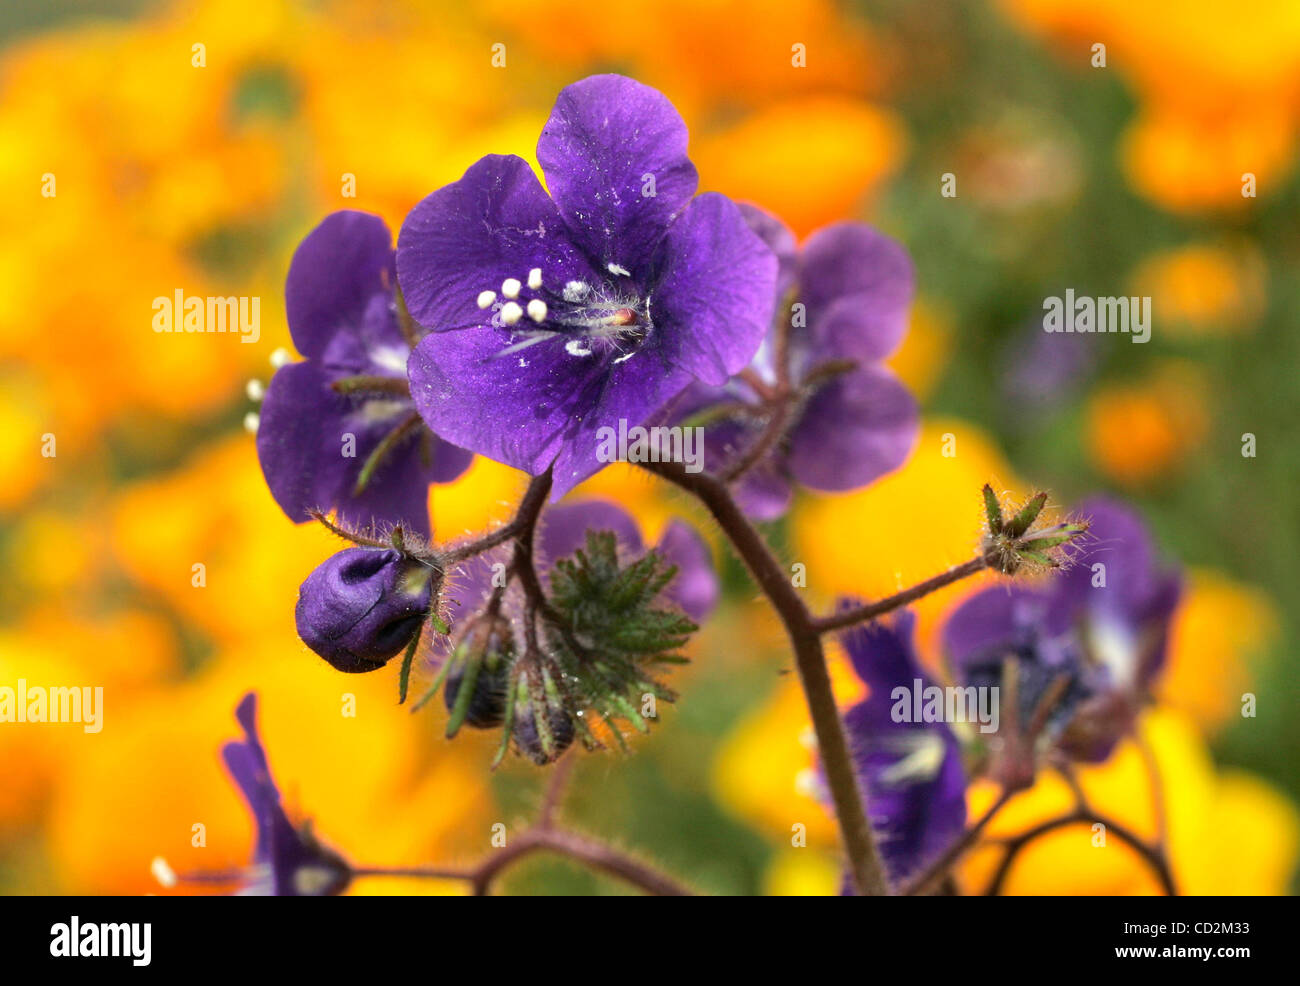 March 12, 2008, Poway, California, USA_Detail view of Canterbury Bells flowers growing among California Poppies - Stock Image